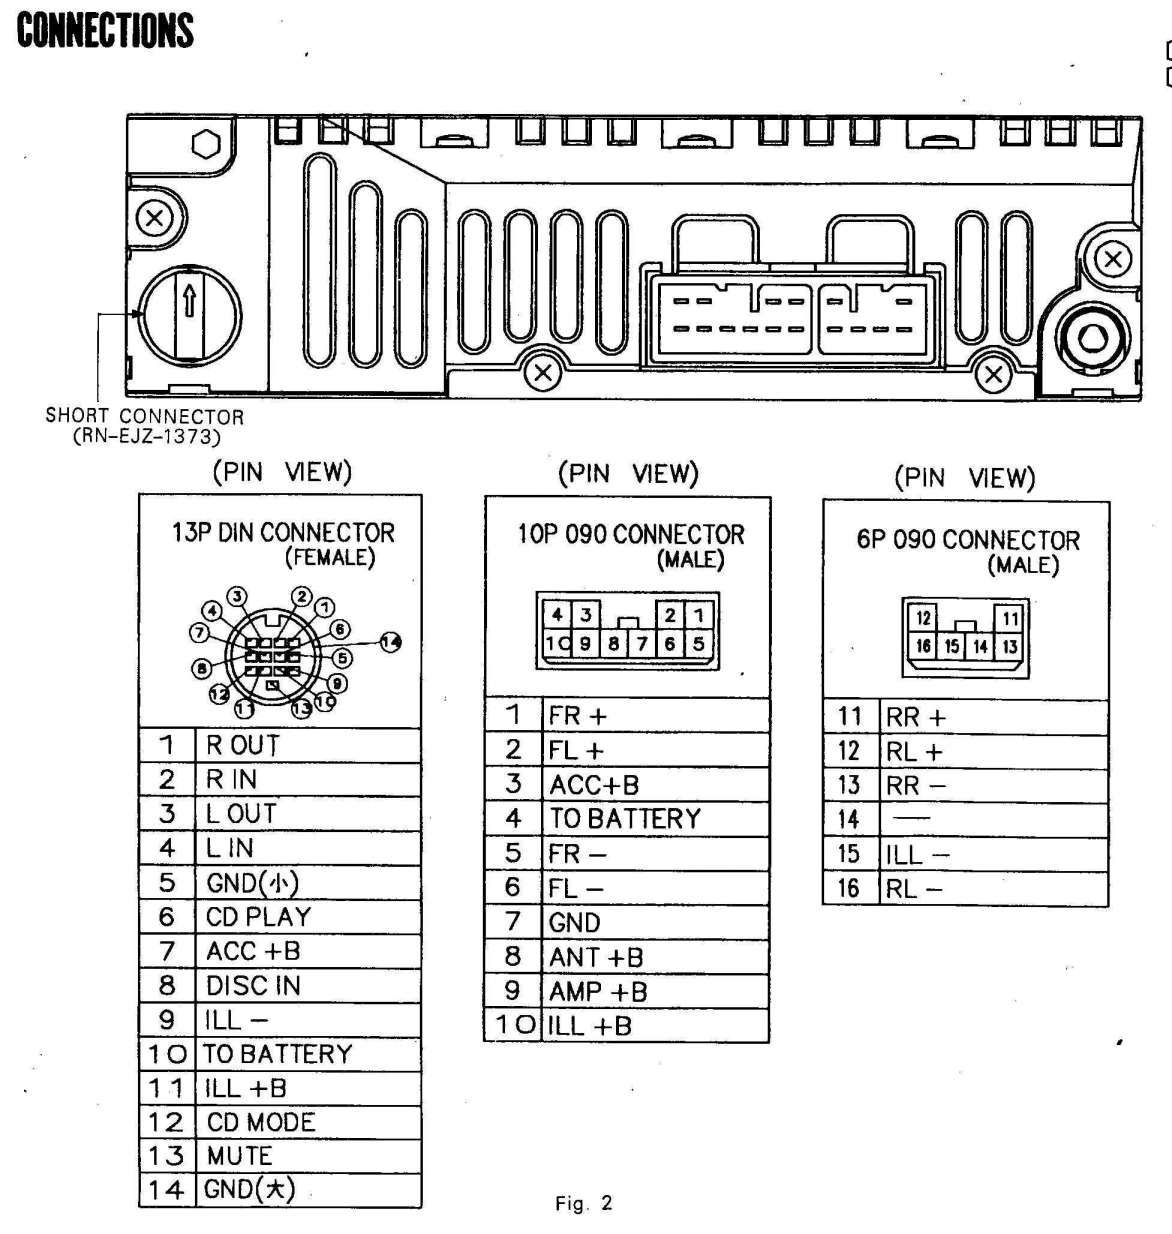 Pioneer Car Stereo Wiring Diagram And Alpine Car Radio Wiring Wiring Diagrams Folder Car Stereo Sony Car Stereo Pioneer Car Stereo